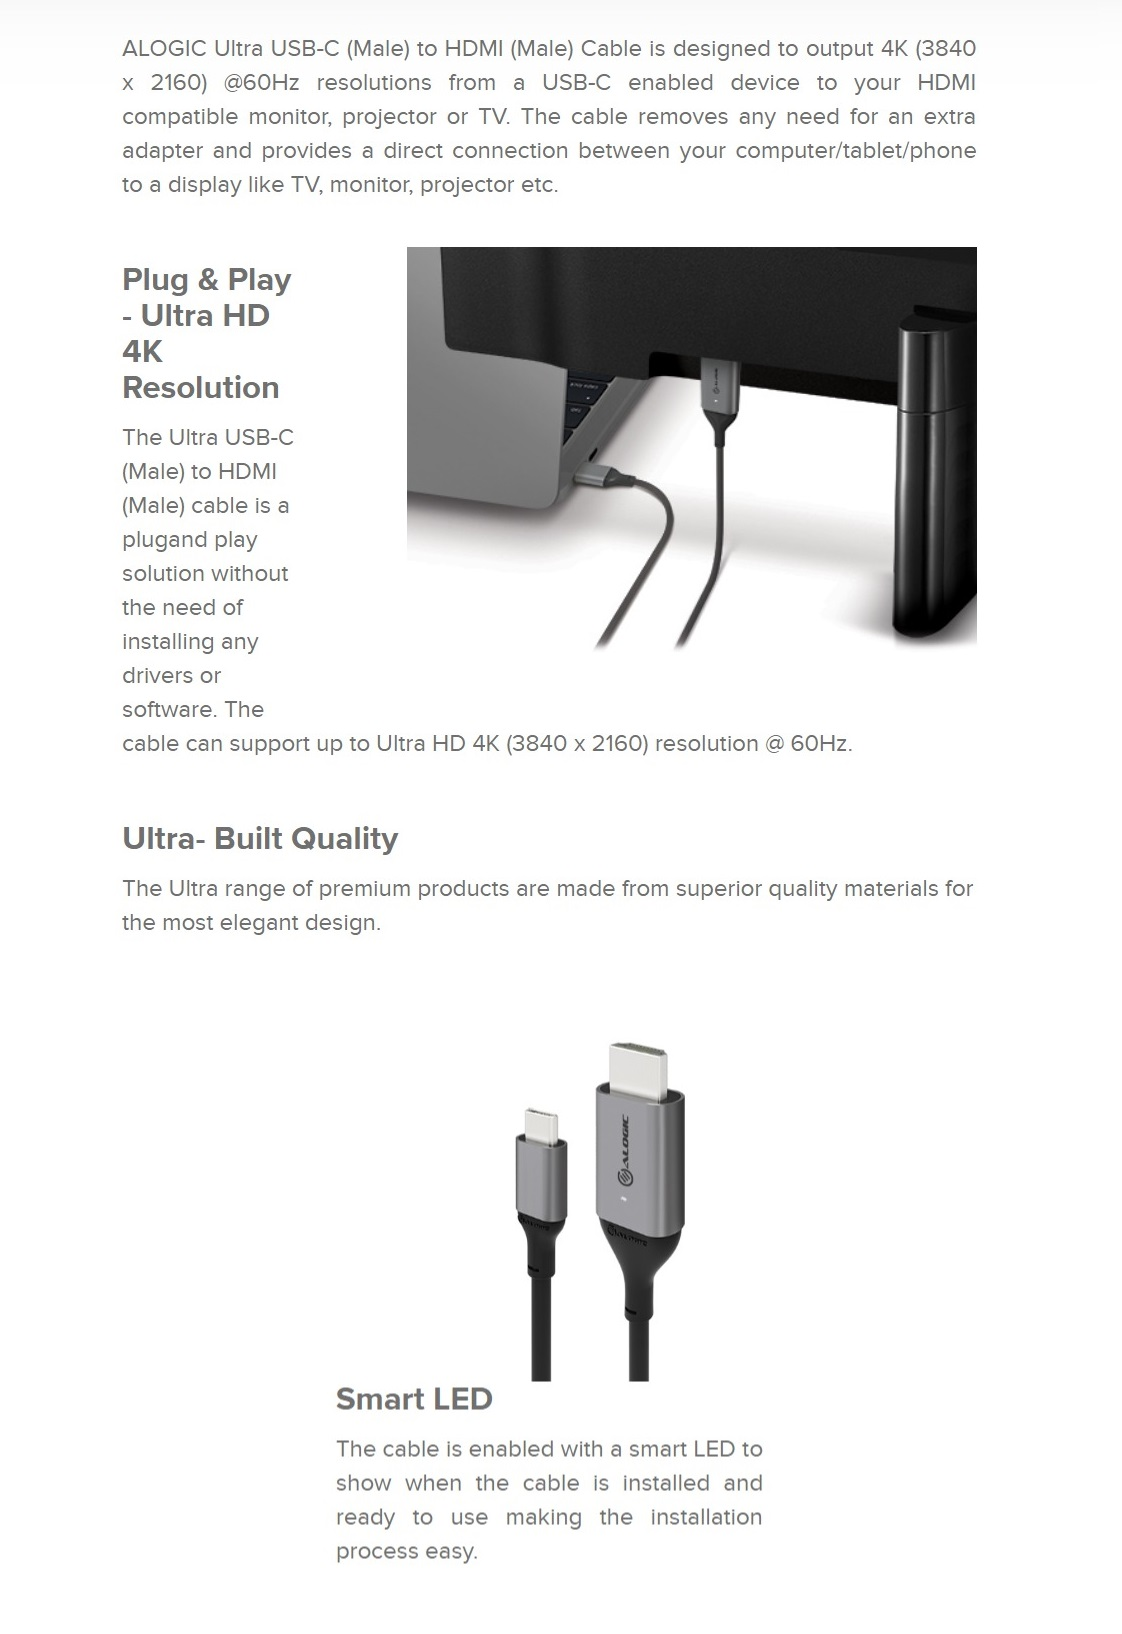 Alogic 2m Ultra USB-C (Male) to HDMI (Male) Cable - Up to 3840 x 2160 4K @60Hz